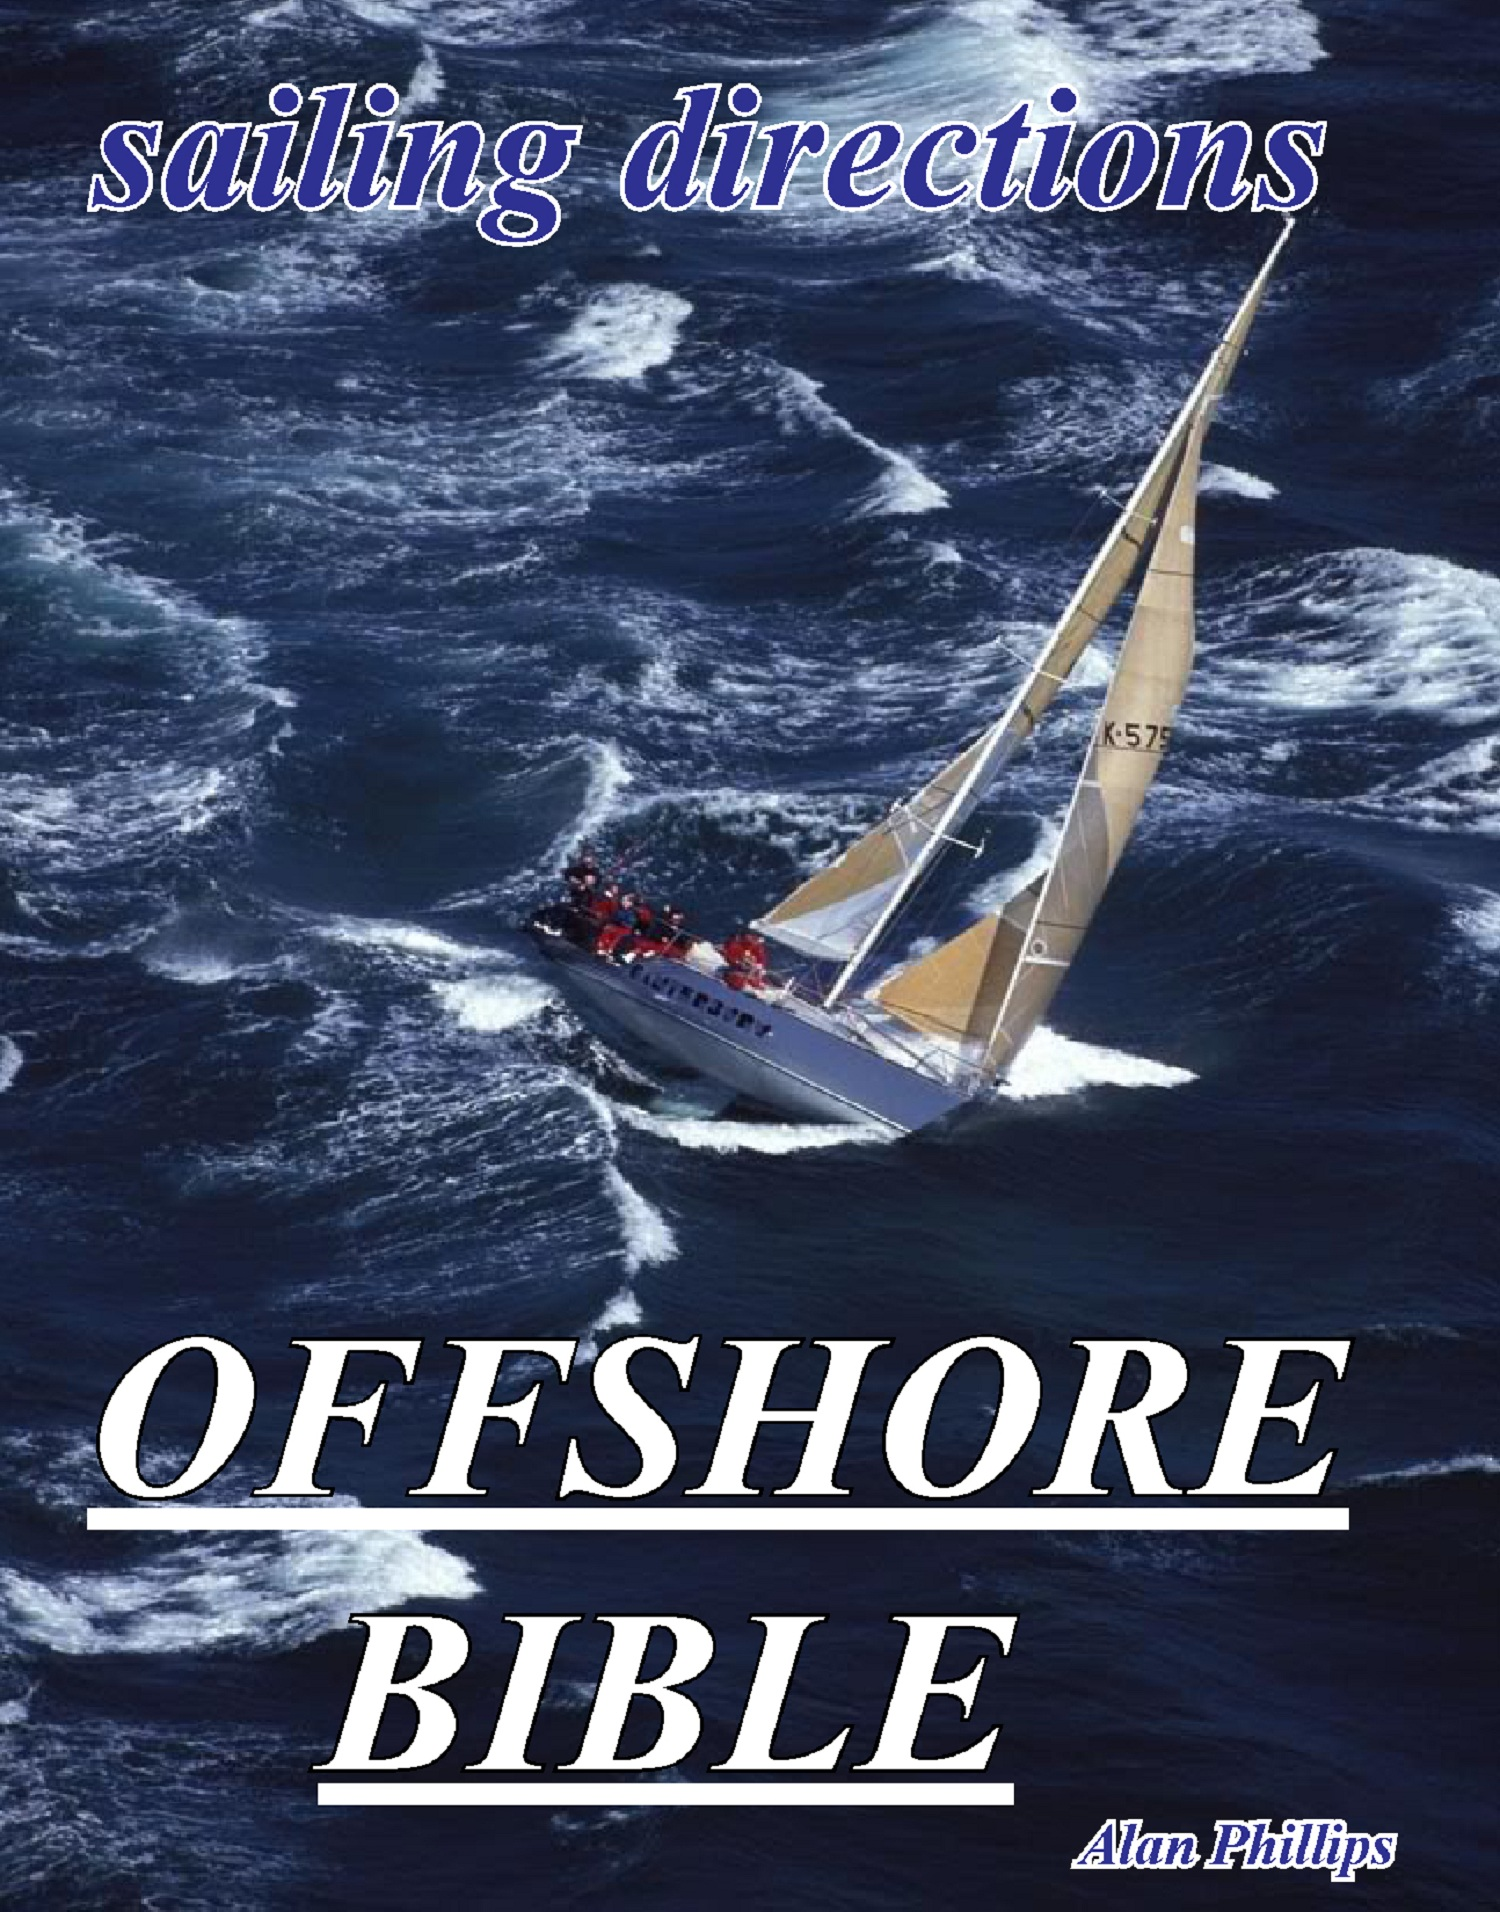 Offshore Bible: Sailing Directions